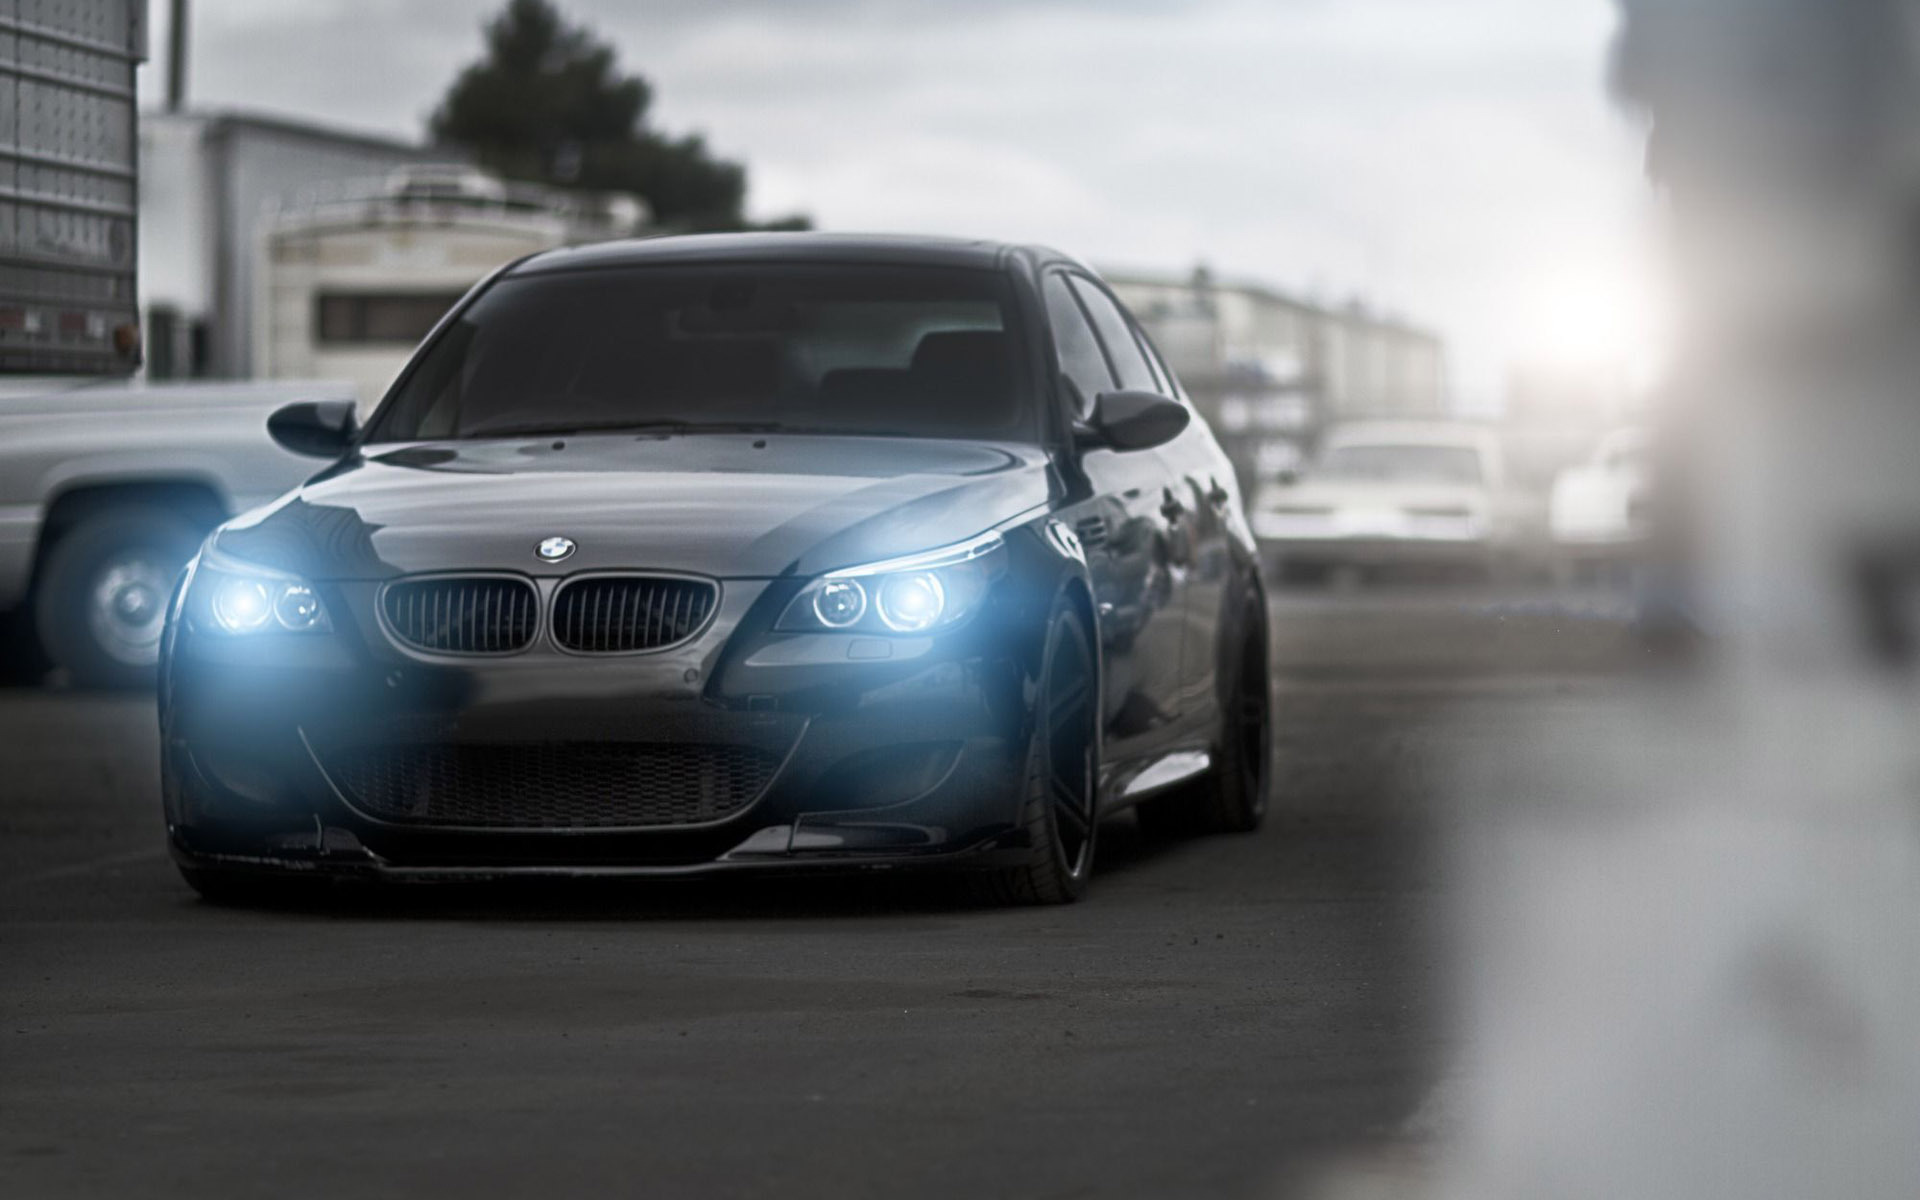 BMW M5 E60 HD Wallpaper 1920x1080 BMW M5 E60 HD Wallpaper 1920x1200